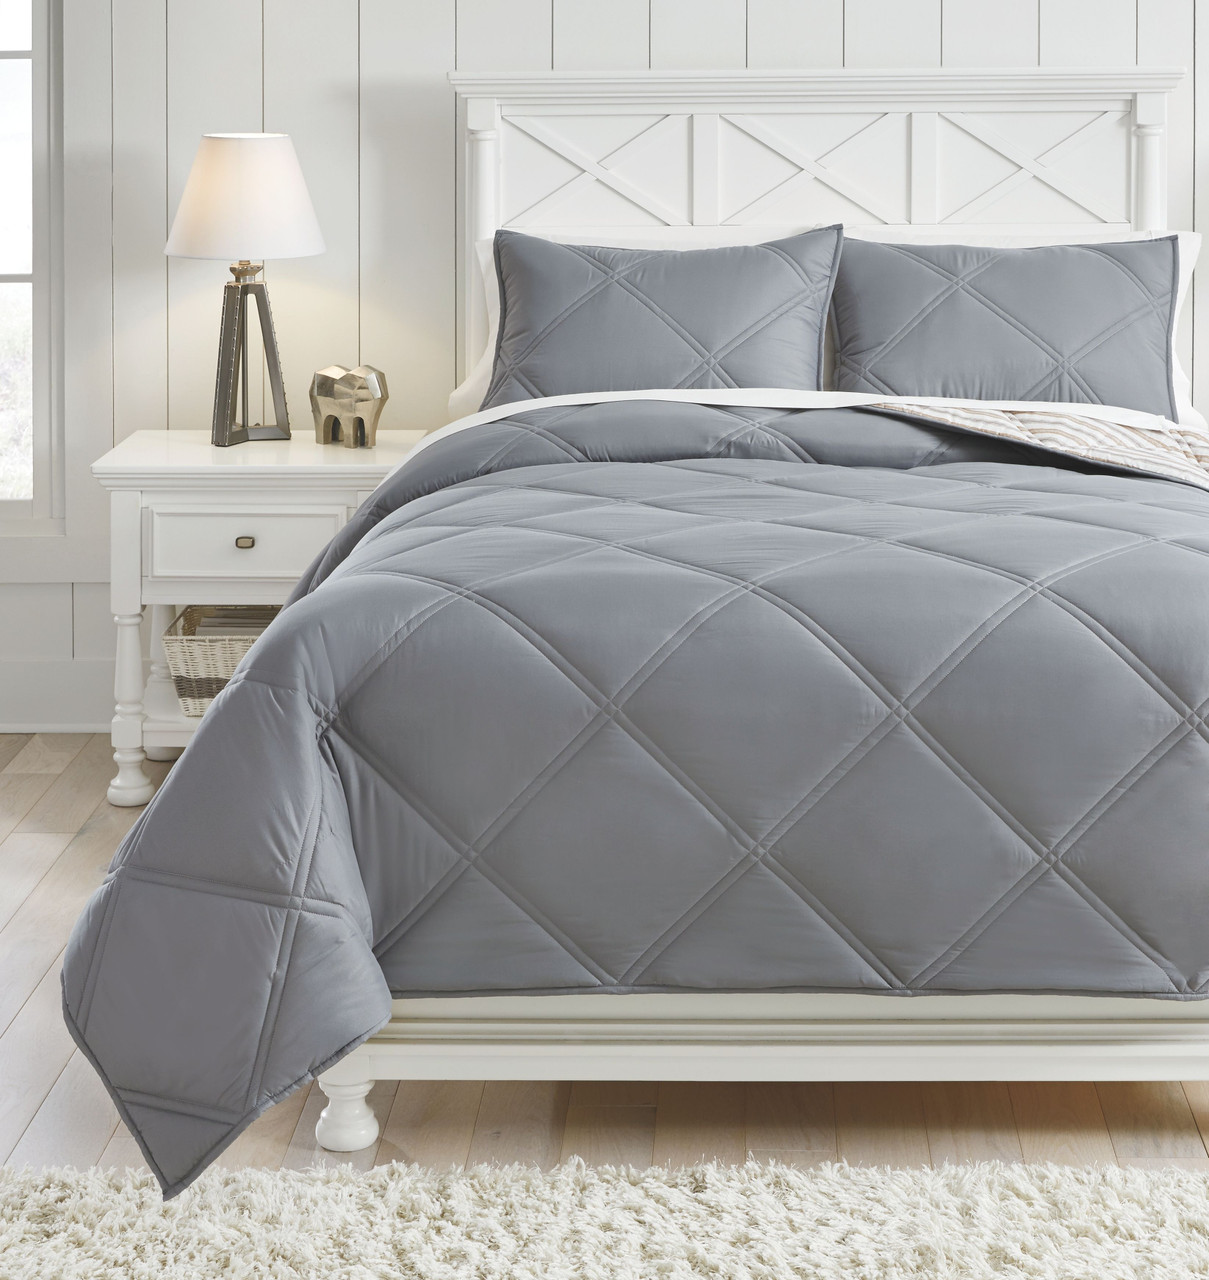 The Rhey Tan Brown Gray Full Comforter Set Available At Bitney S Furniture And Mattress Company Serving Kalispell Mt